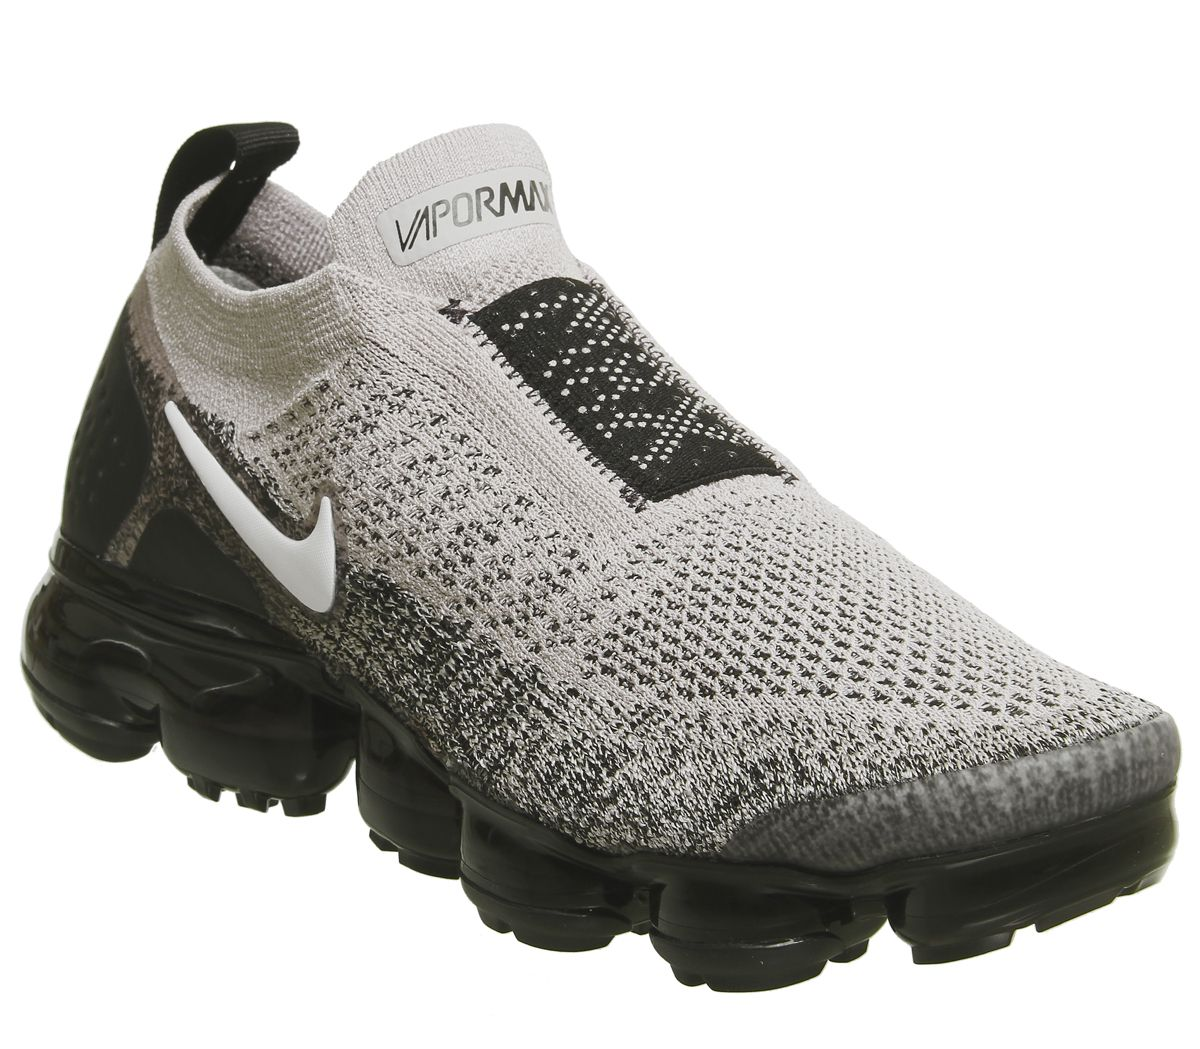 b320957885 Nike, Air Vapormax Flyknit Moc 2, Moon Particle White Black | Shoes ...